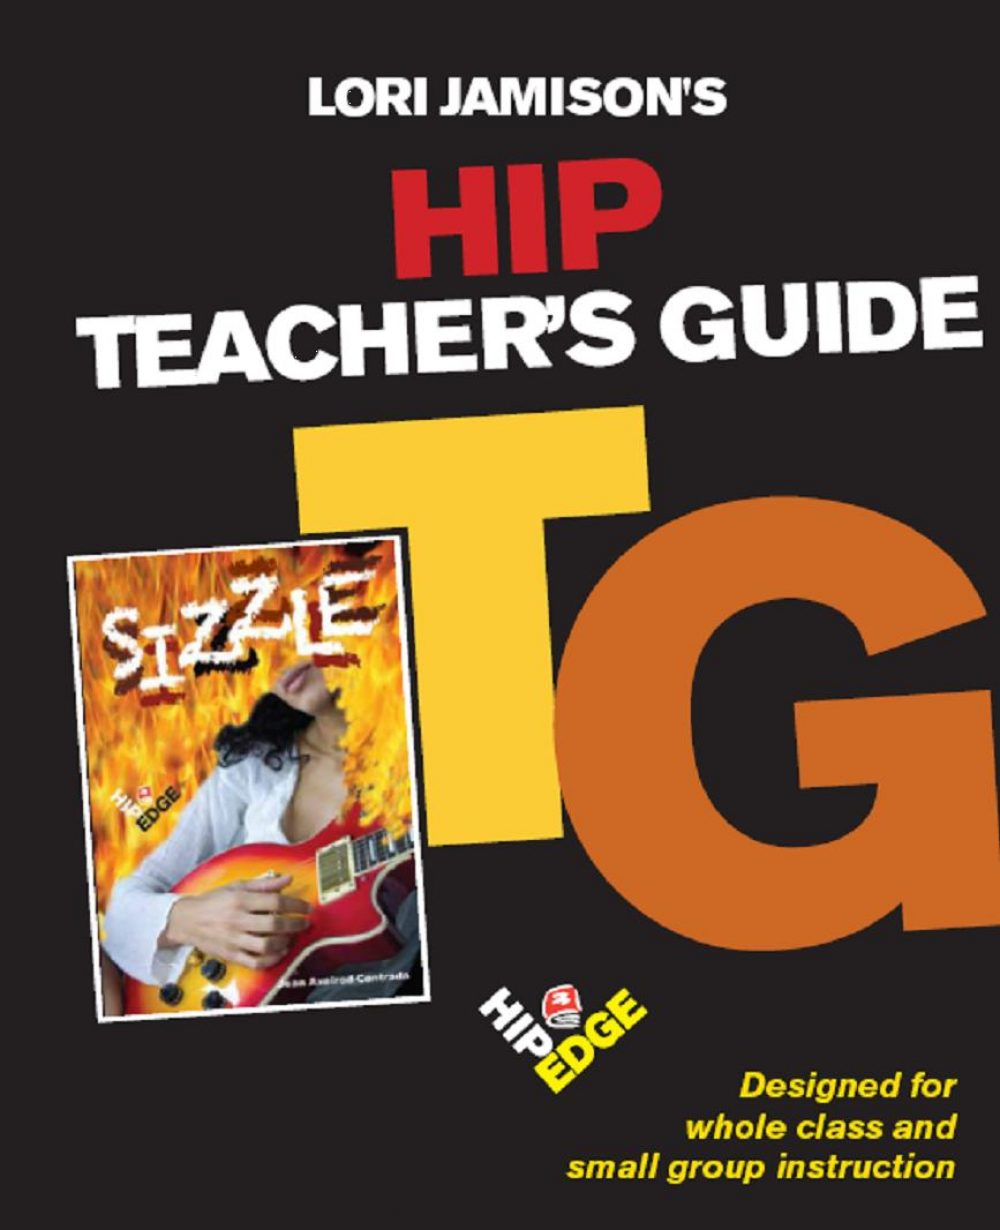 Sizzle - Teacher's Guide